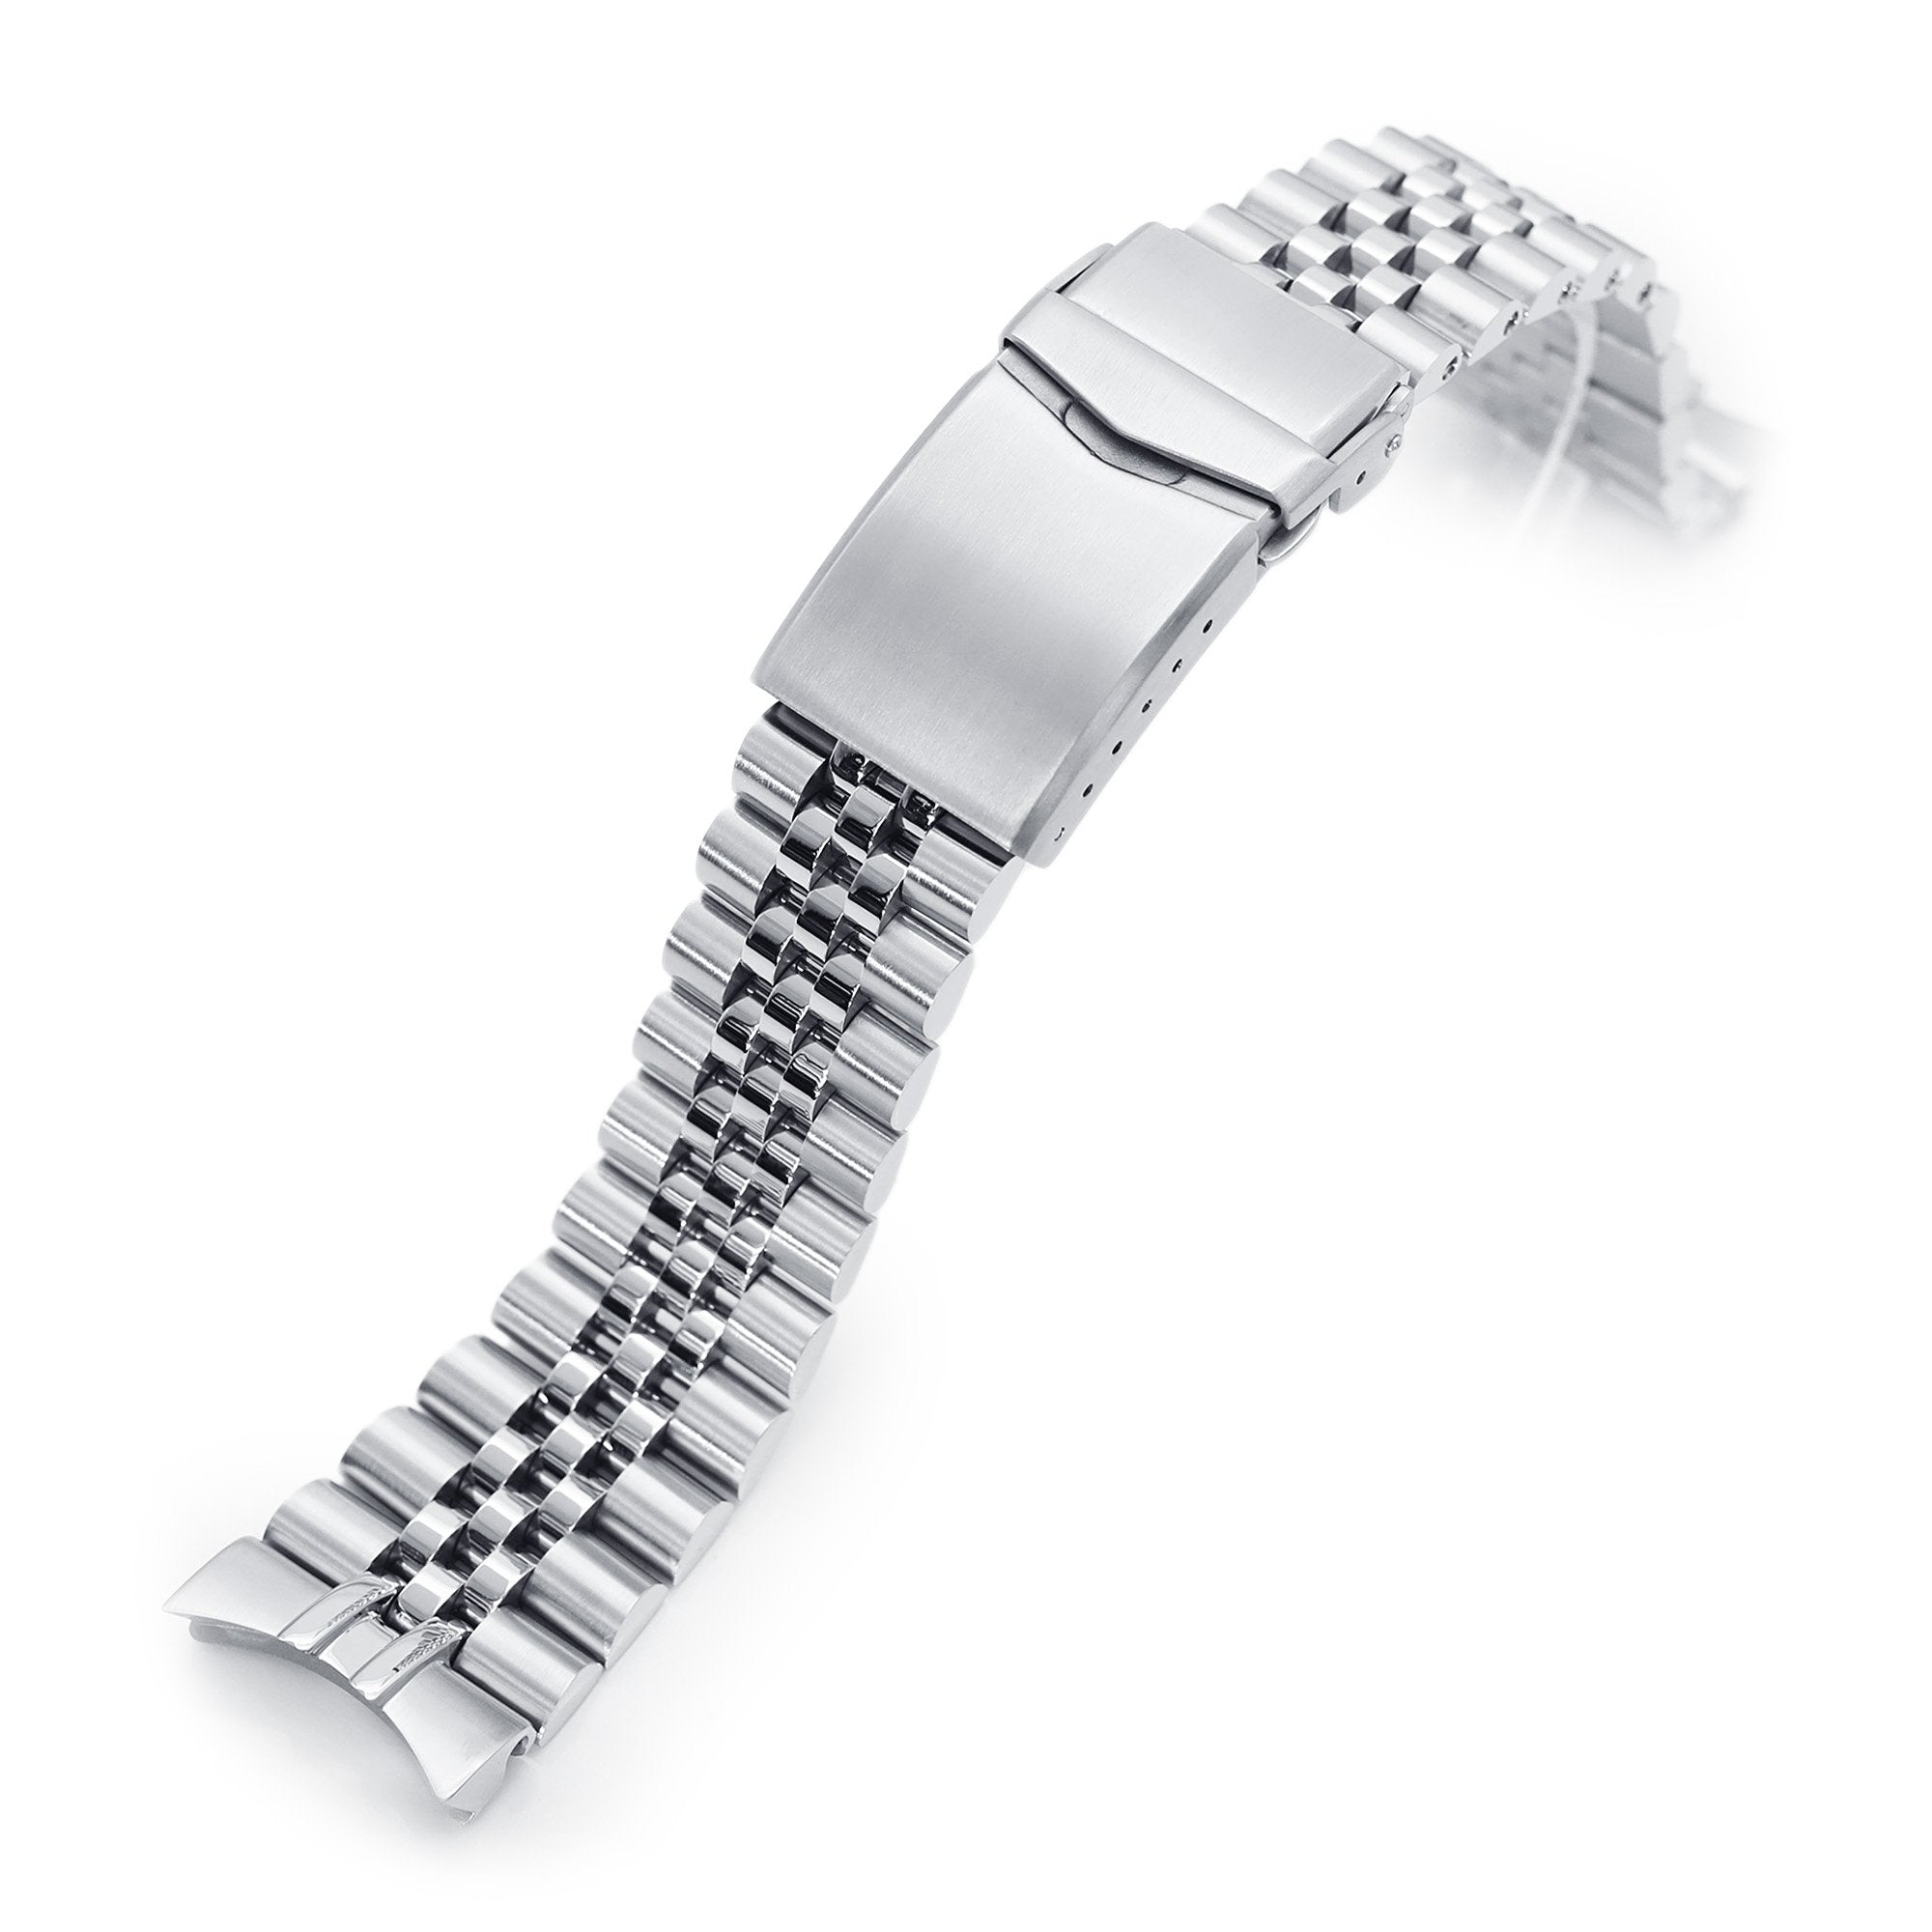 22mm Super-J Louis 316L Stainless Steel Watch Bracelet for Orient Kamasu Brushed V-Clasp Strapcode Watch Bands